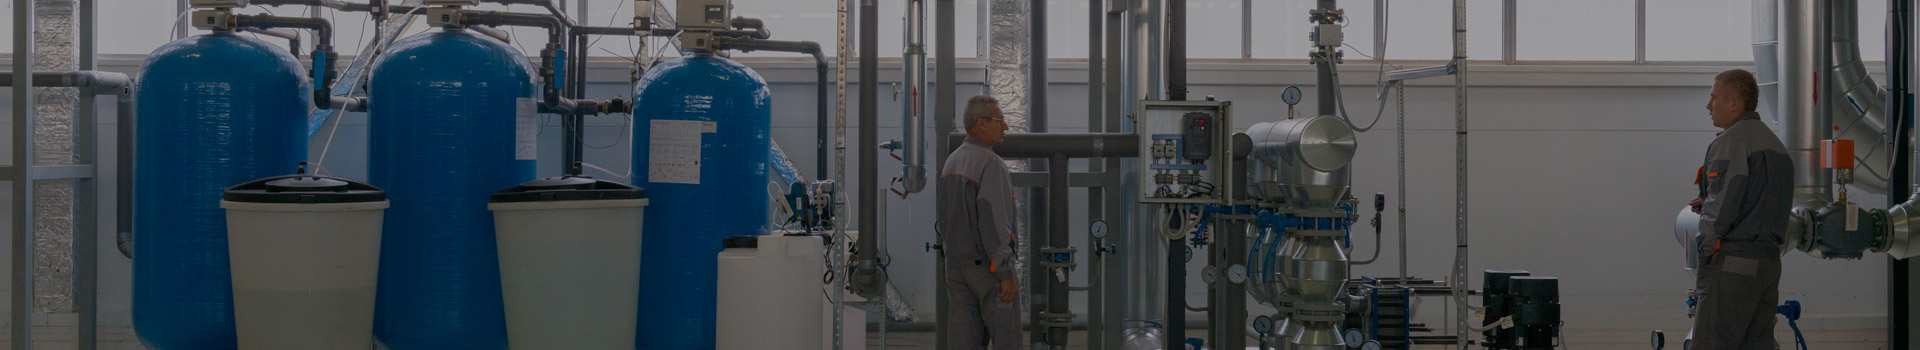 Water Treatment banner image